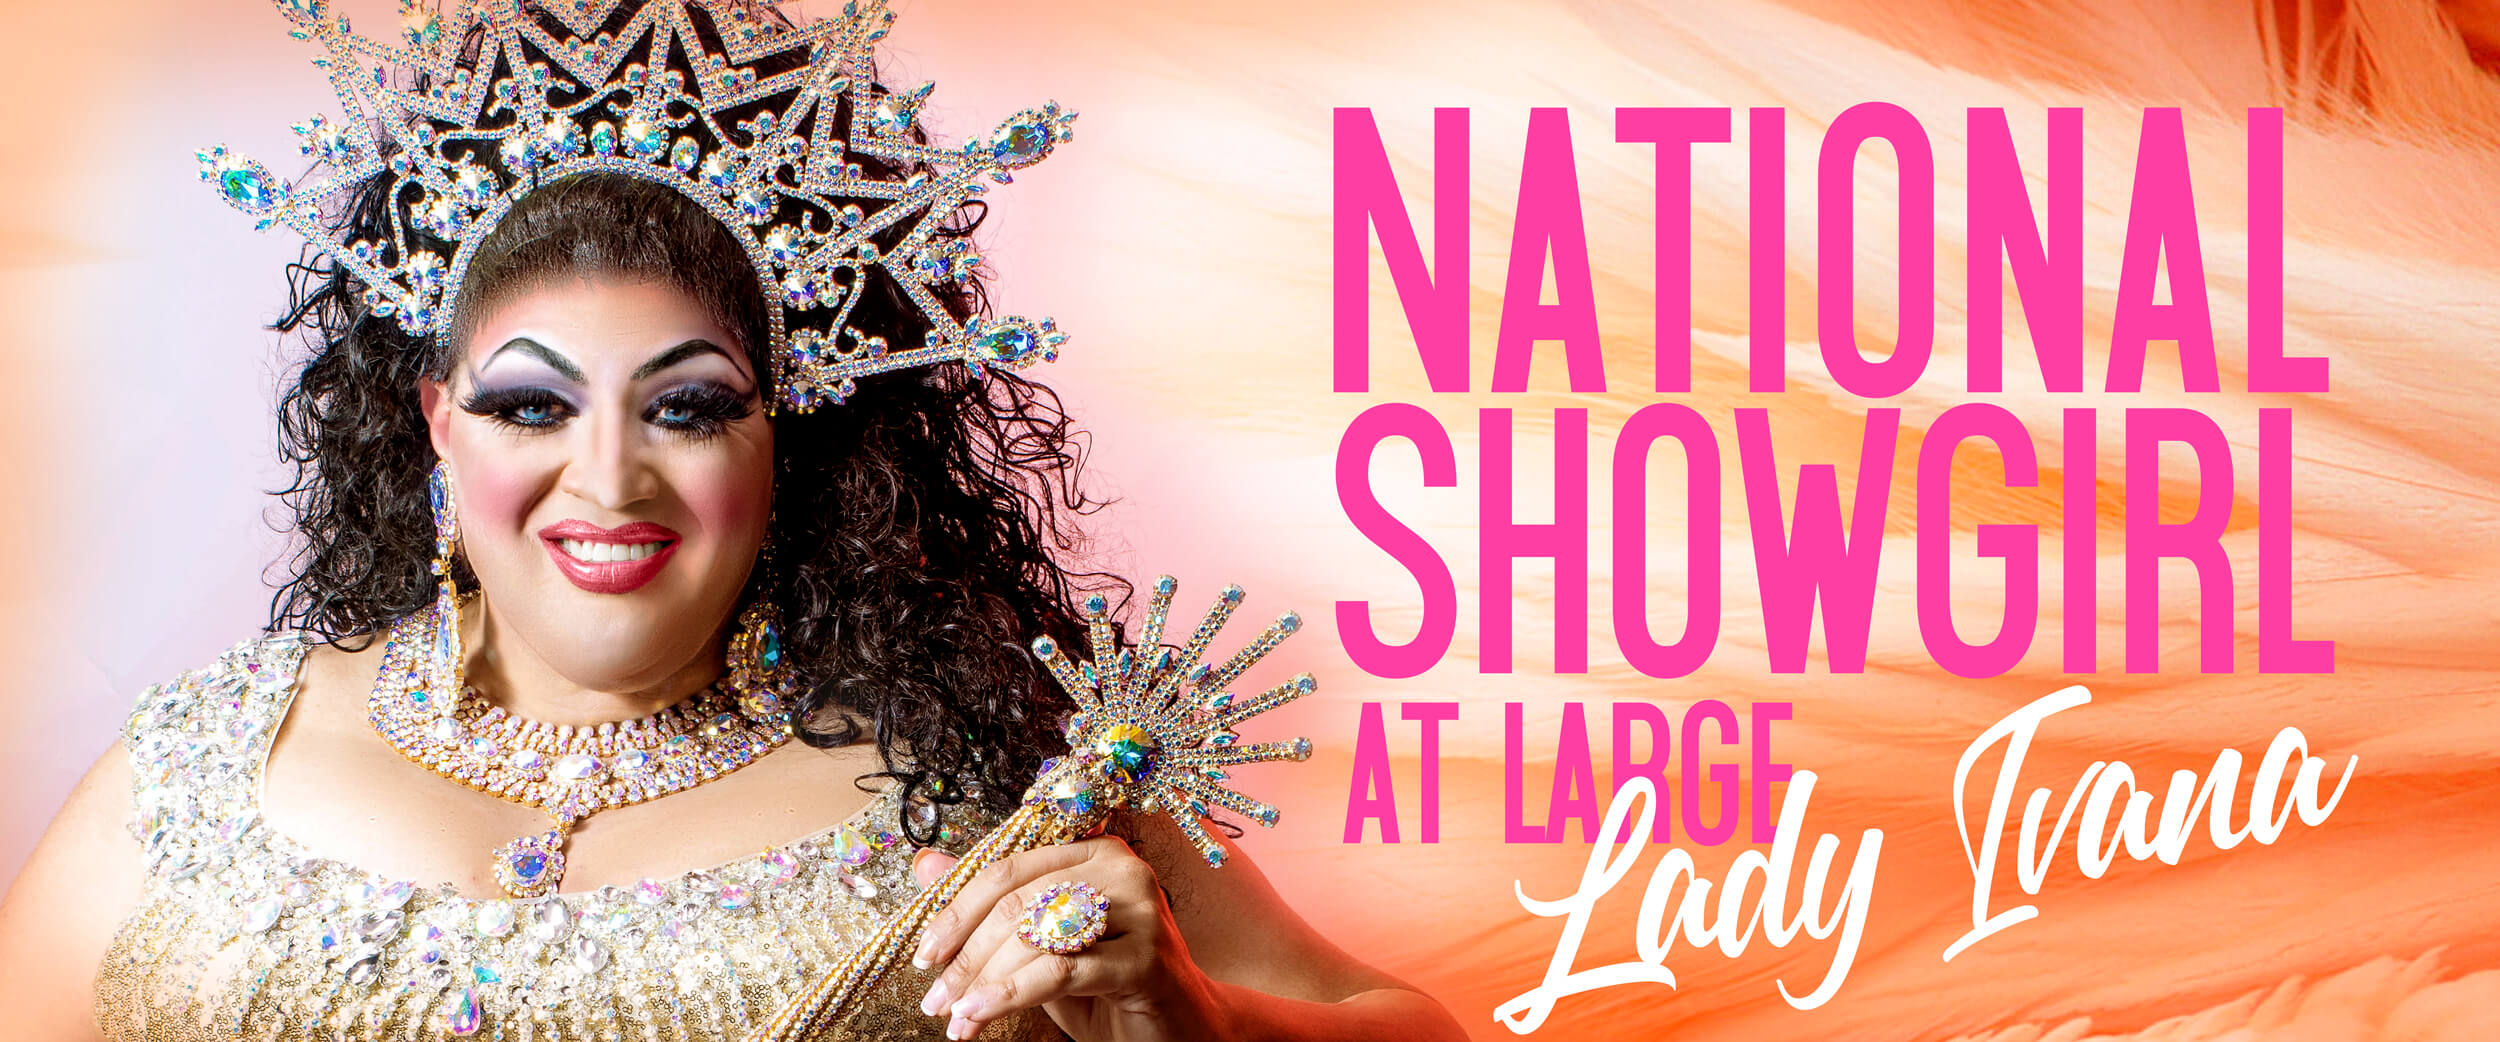 Lady-Ivana---National-Showgirl-At-Large-banner-1